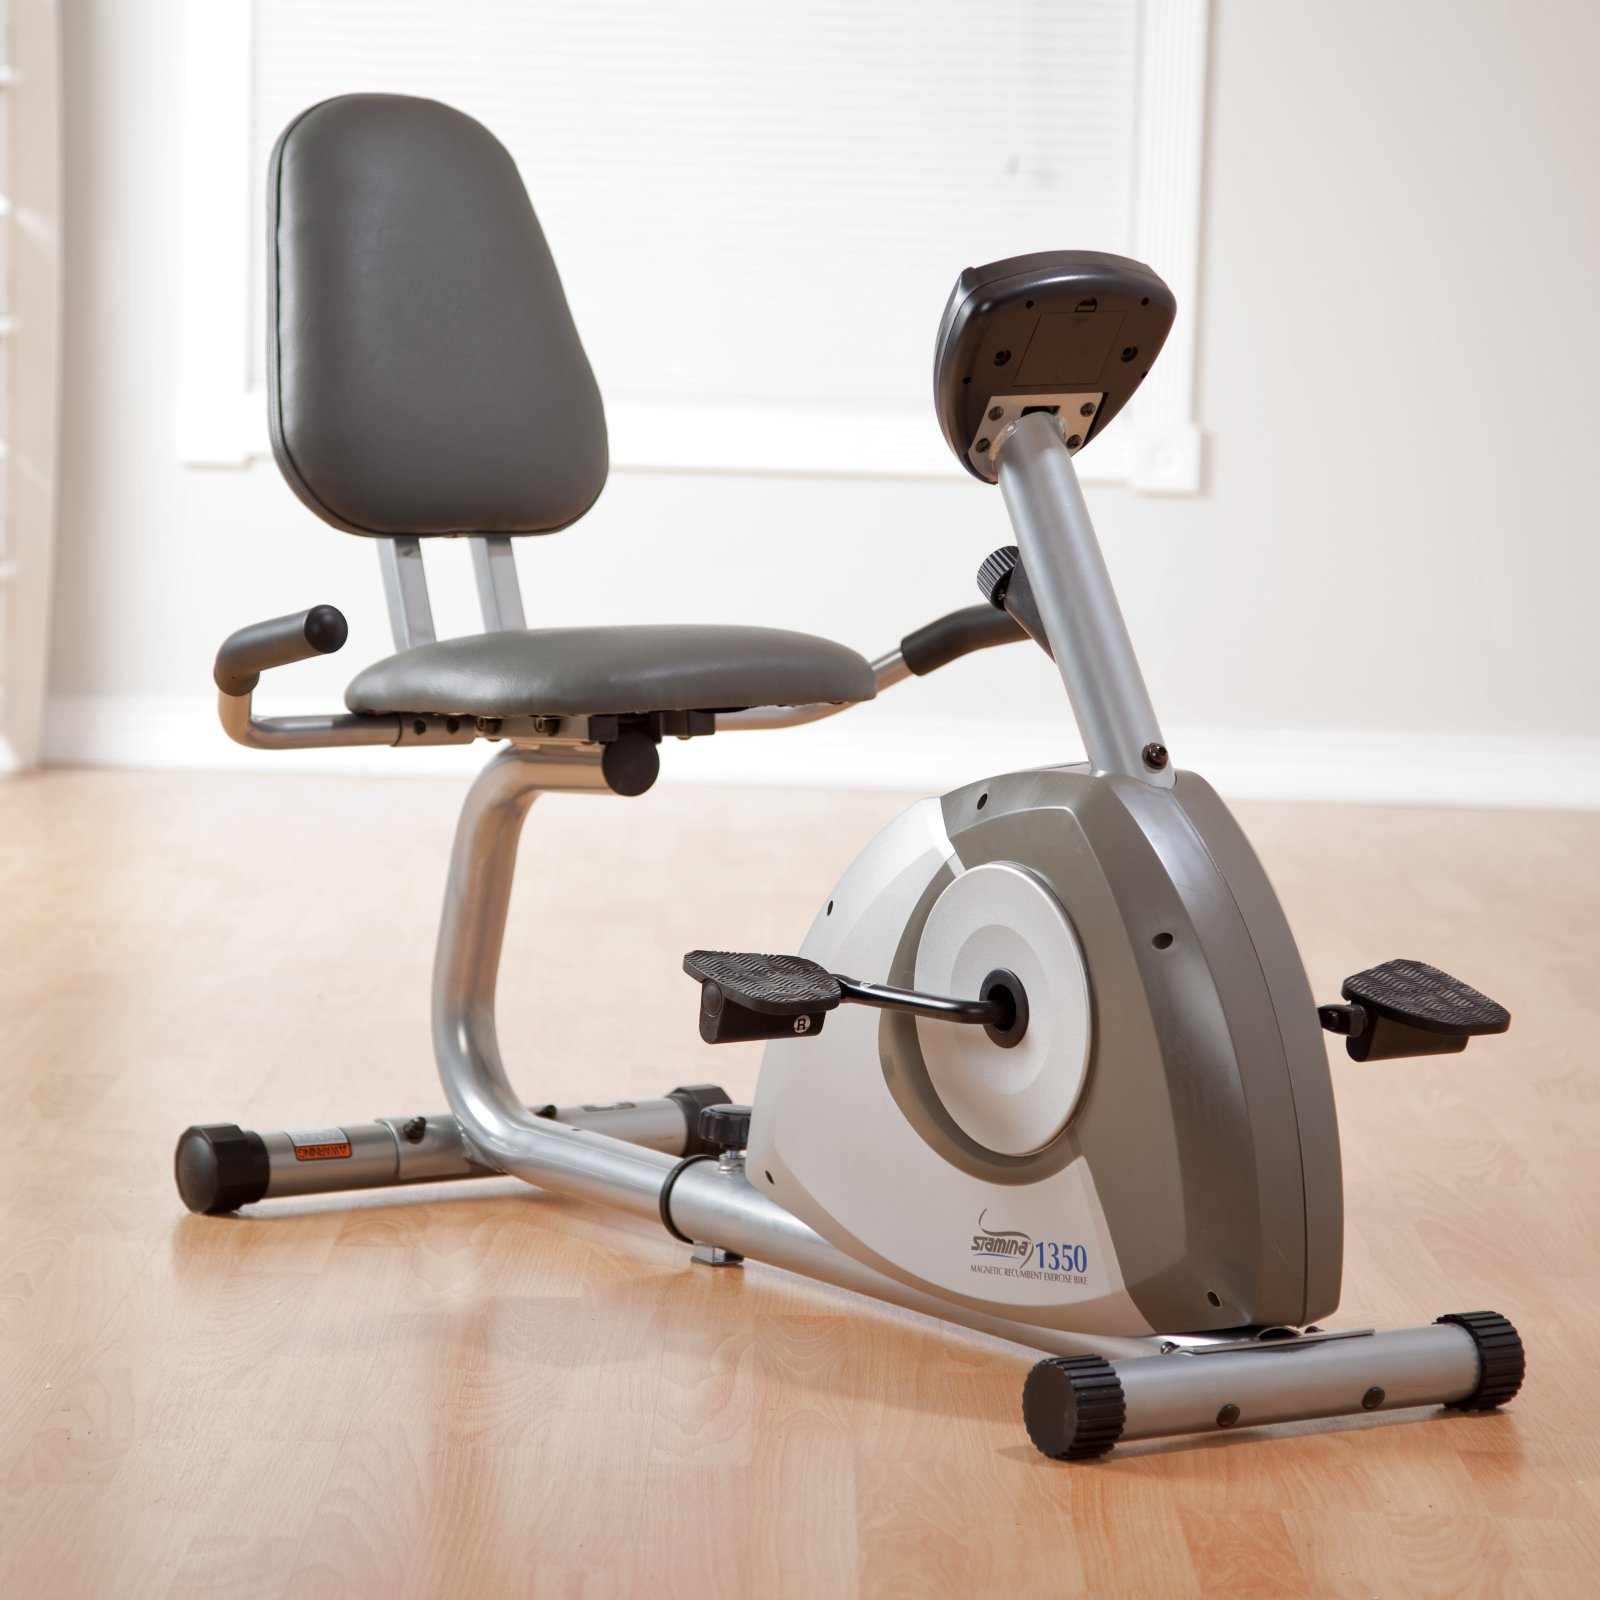 Stamina 1350 Magnetic Recumbent Exercise Bike